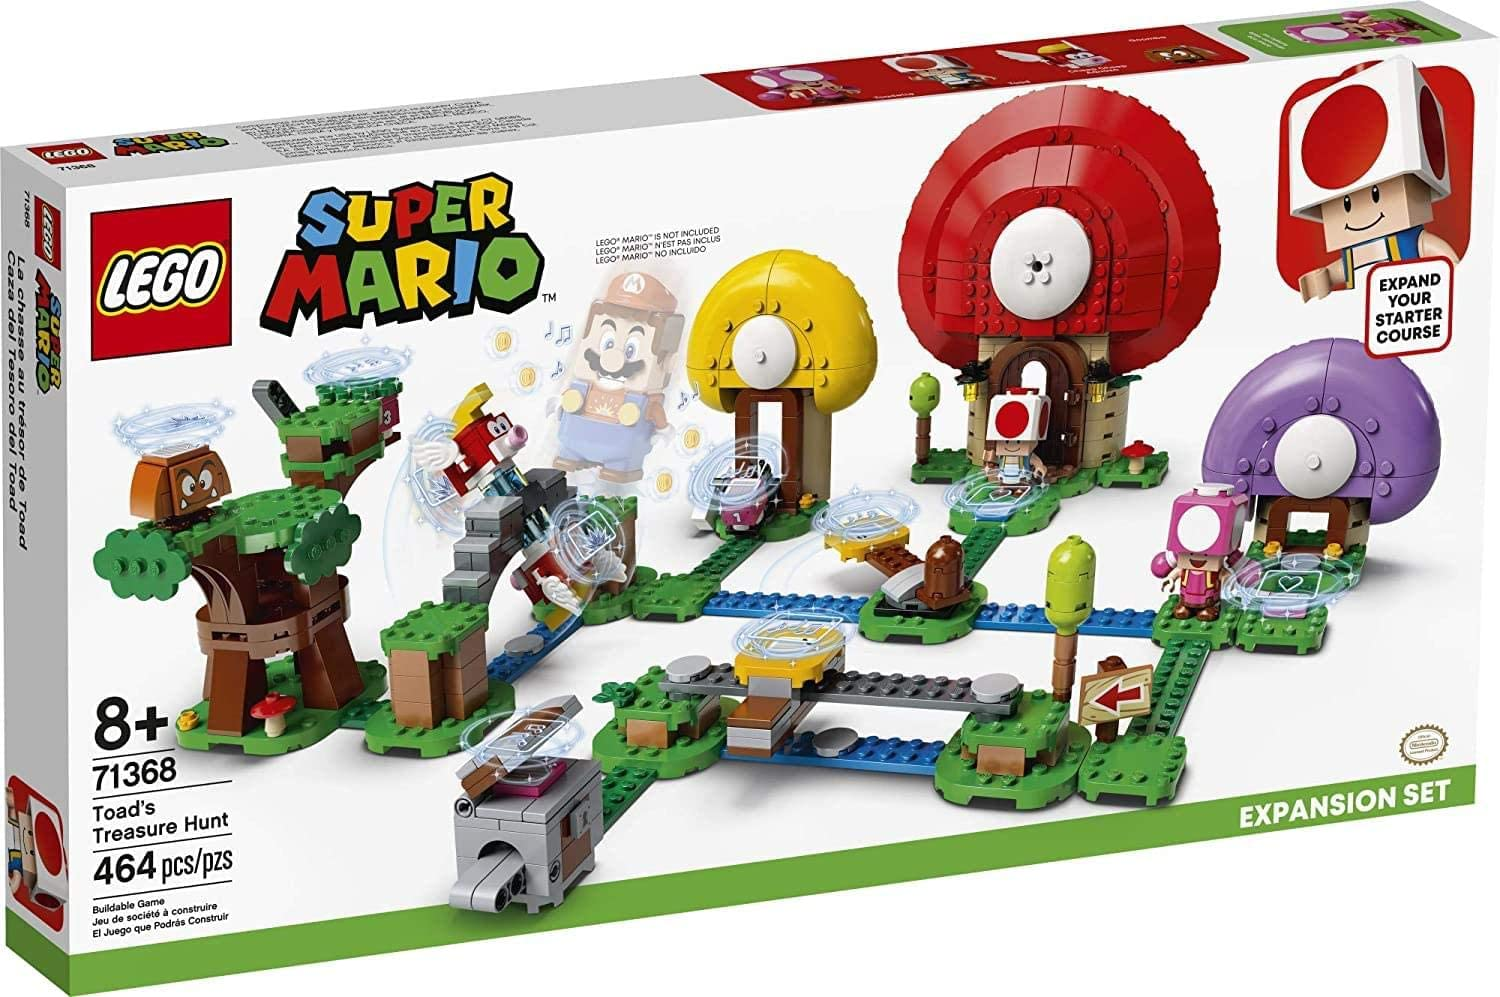 LEGO 71368 - Super Mario - Expansão - A Caça ao Tesouro do Toad